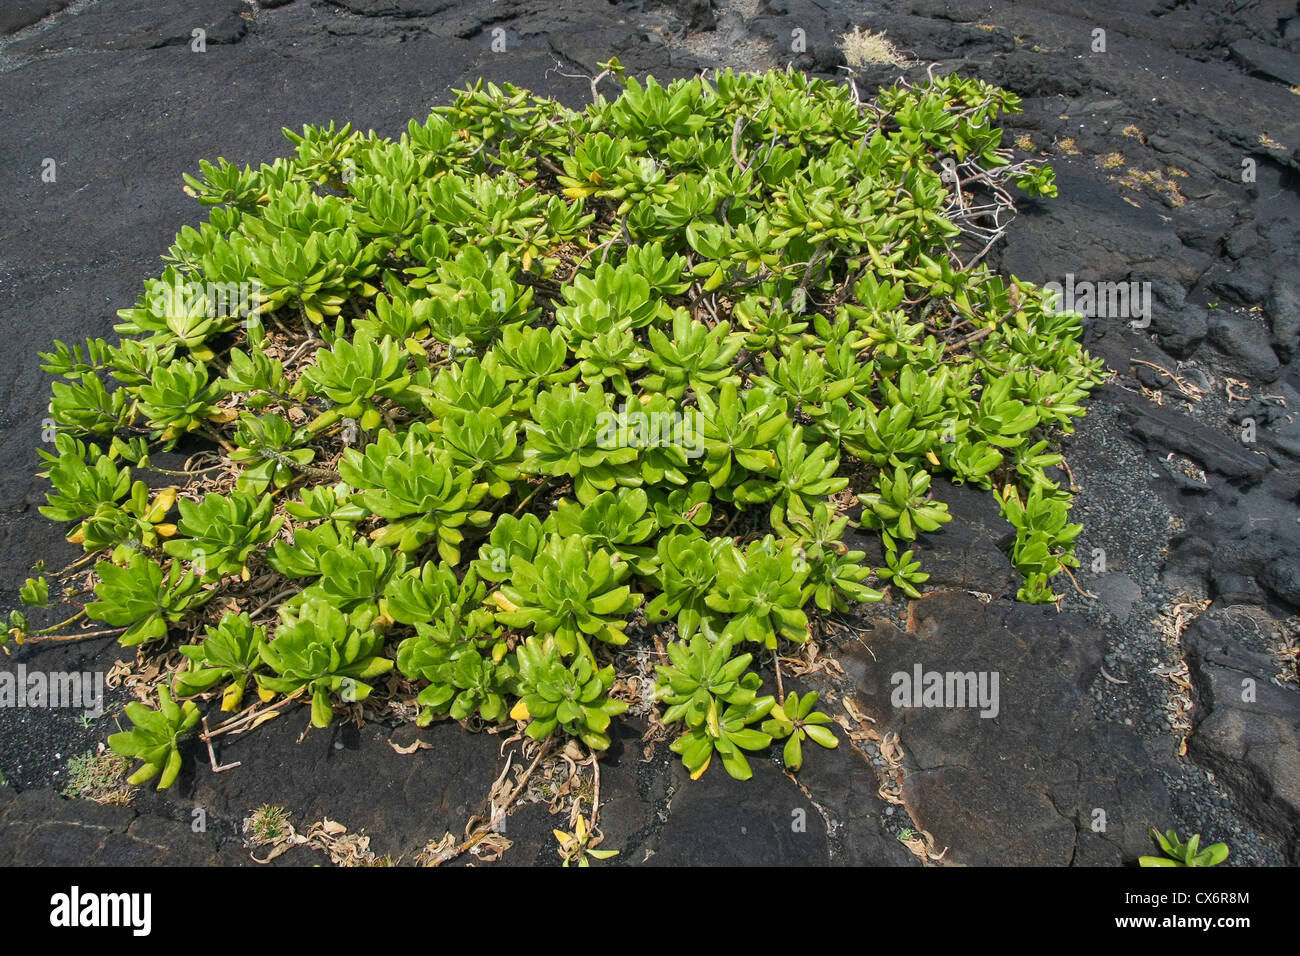 Healthy plant superbly adapted to sulfur dioxide emissions of volcanoes in Hawaii. - Stock Image